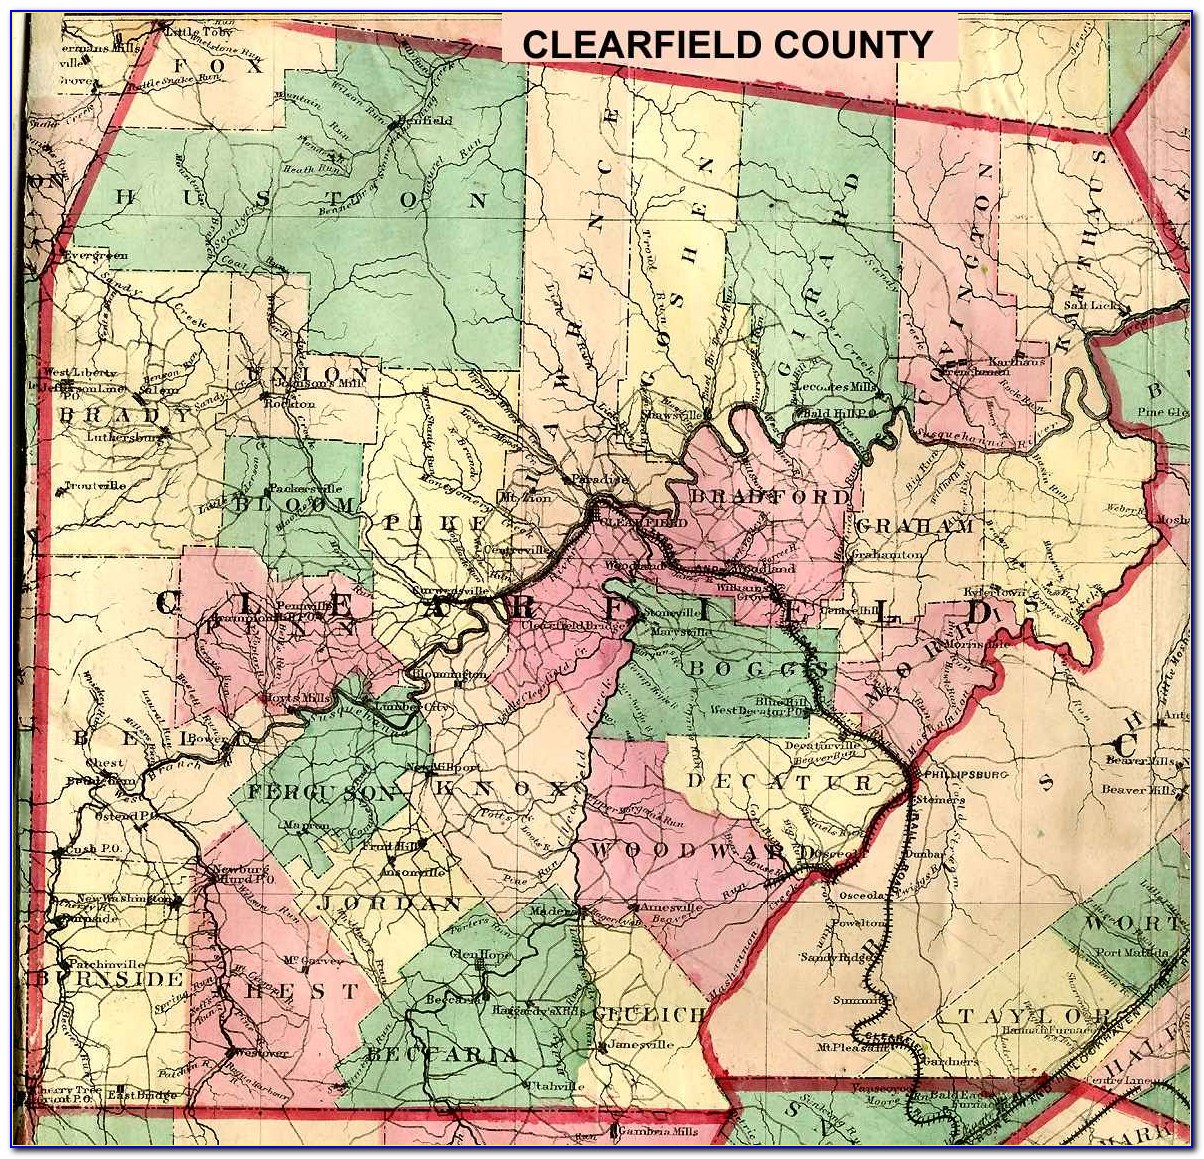 Township Map Of Clearfield County Pa